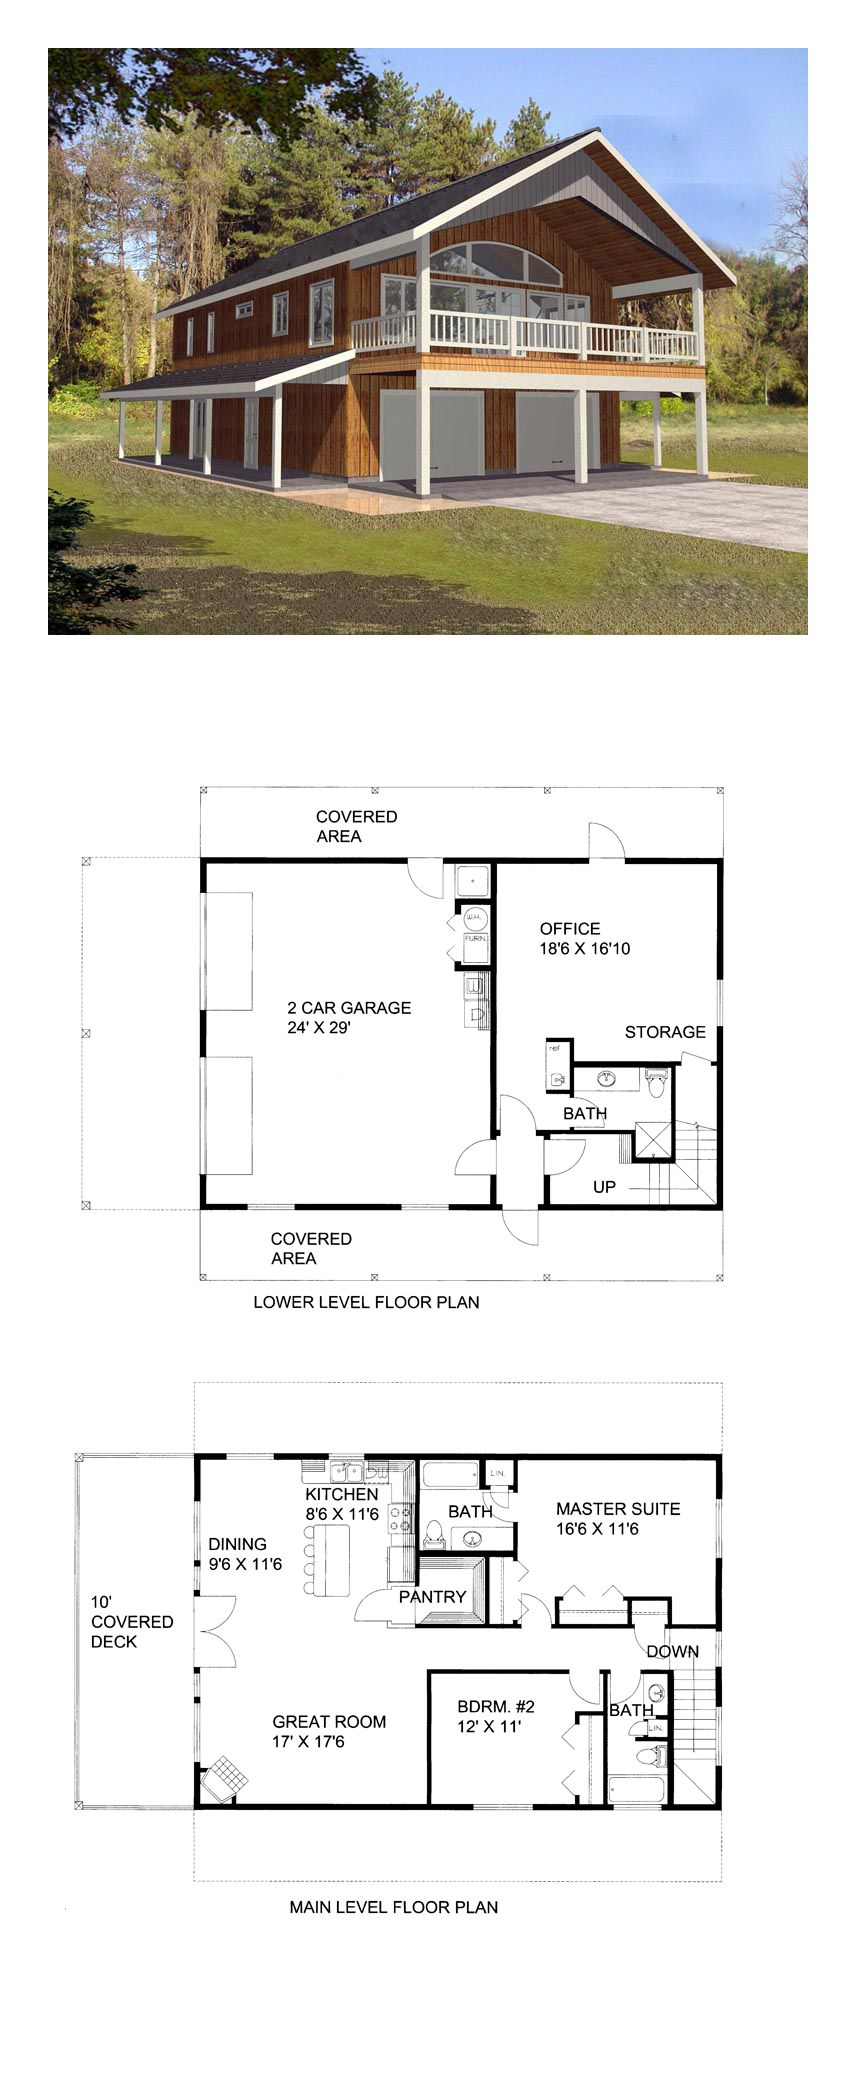 Garage apartment plan 85372 total living area 1901 sq for 3 bedroom garage apartment